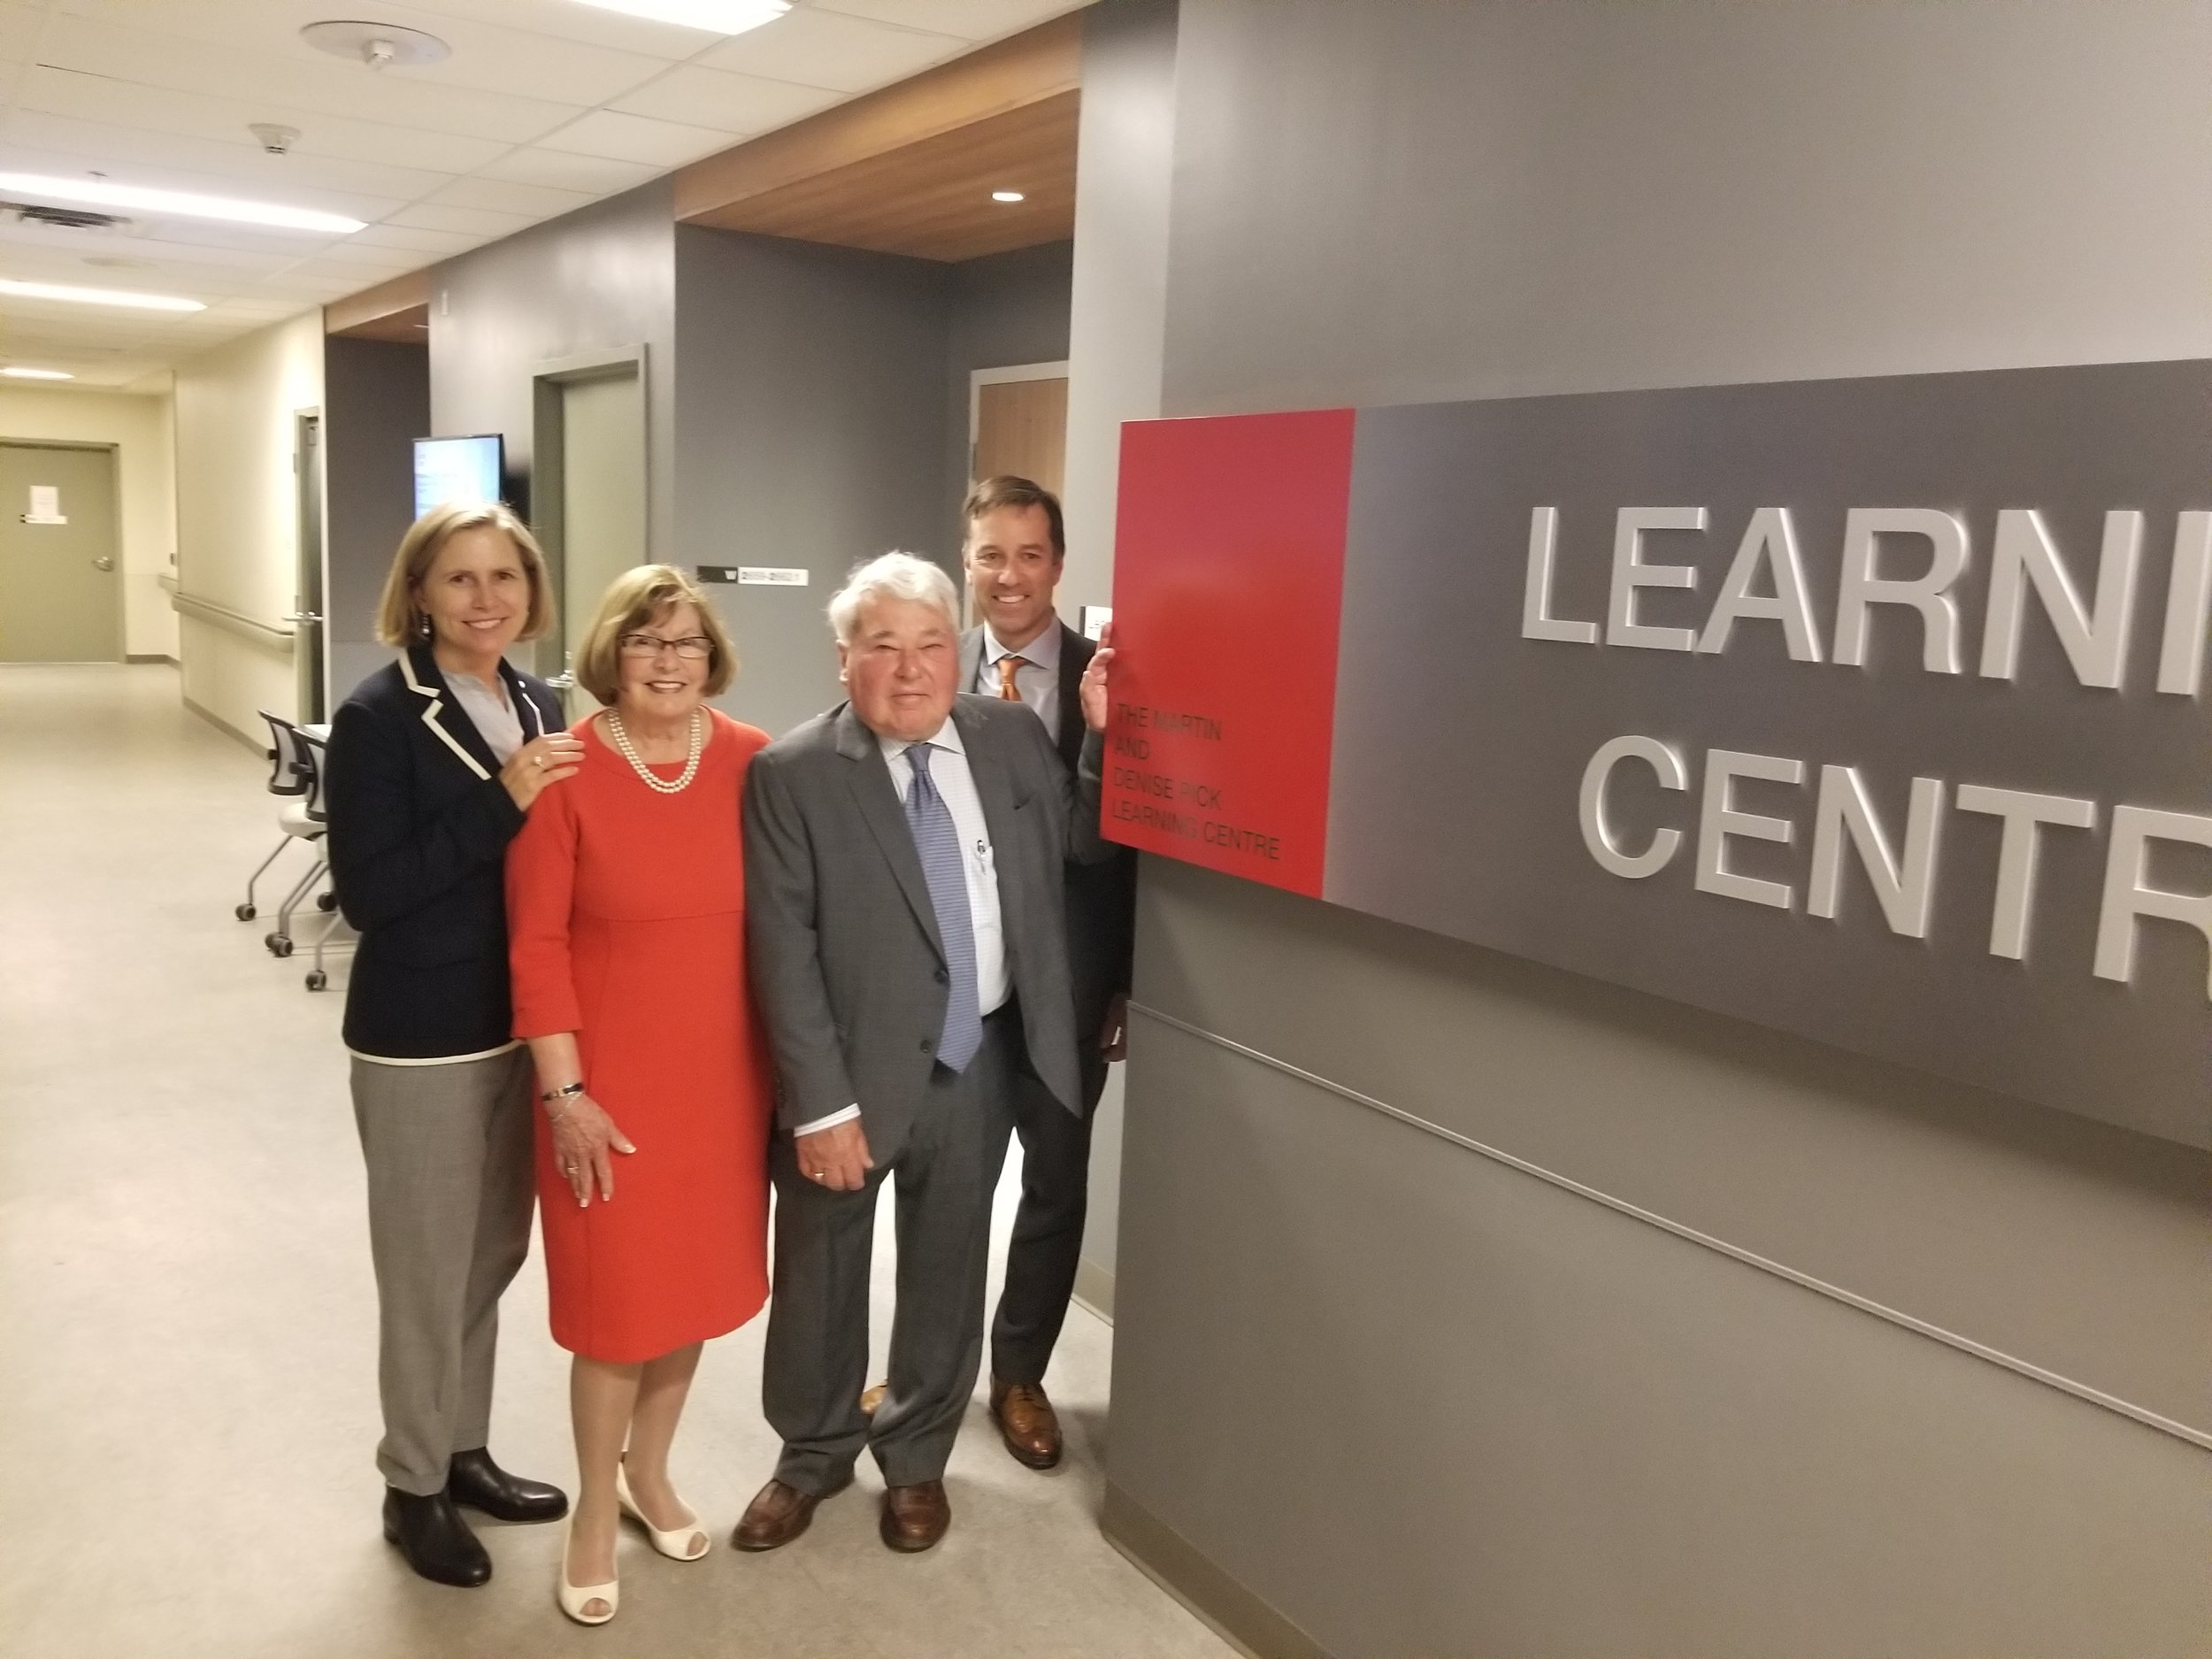 Members of the Pick Family pose at the entrance to the new Martin and Denise Pick Learning Centre that now bears their name.  From left:  Dr.Rardi van Heest, Denise Pick, Martin Pick and Charles Pick.